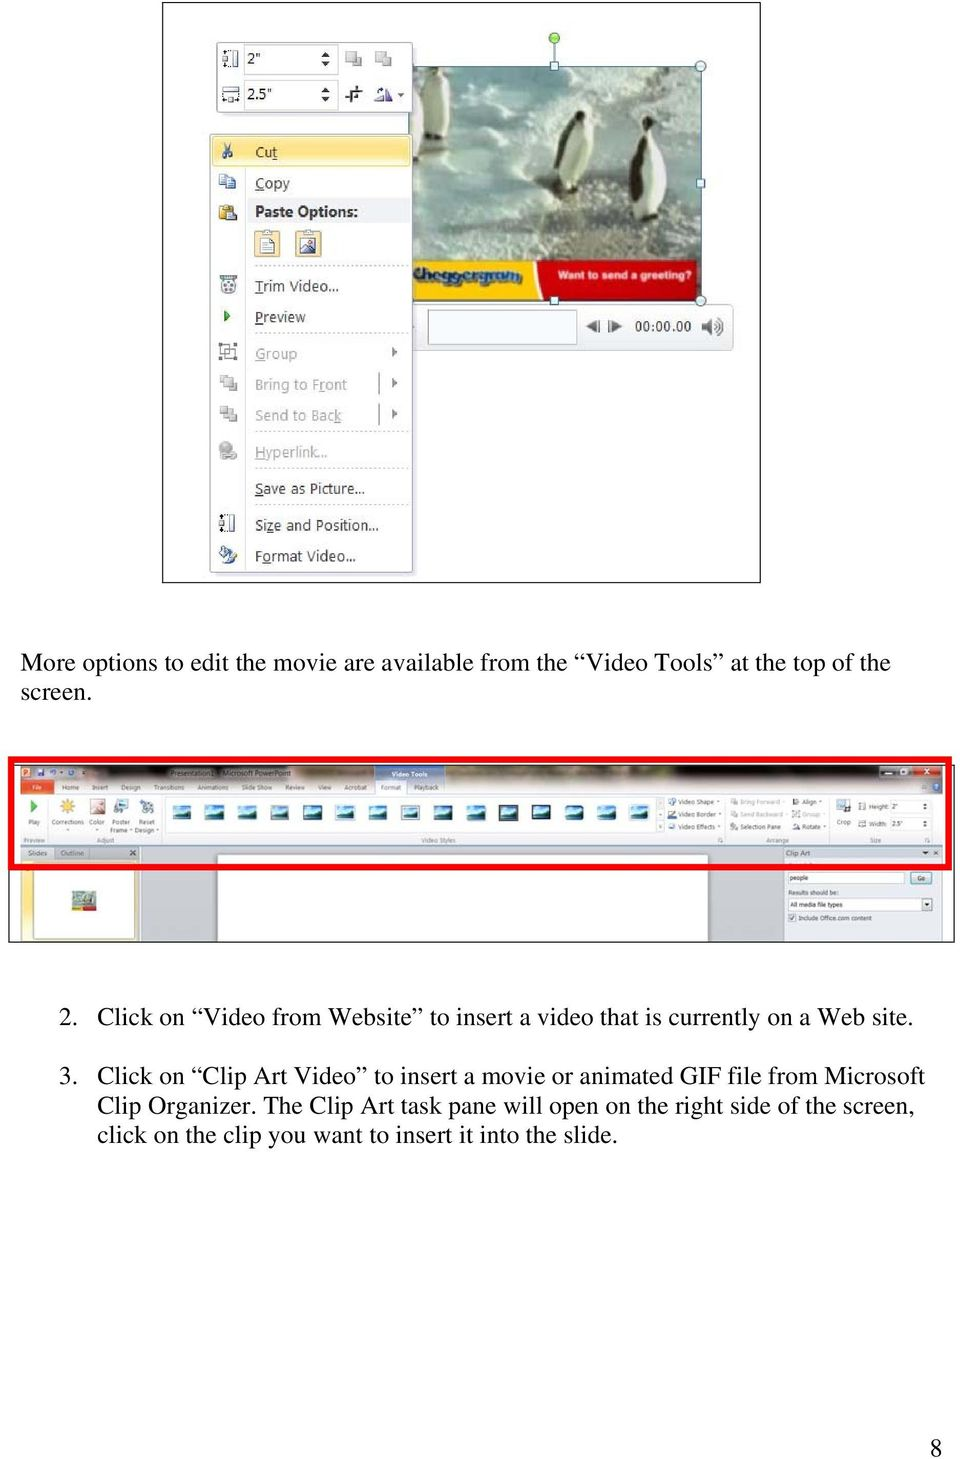 Click on Clip Art Video to insert a movie or animated GIF file from Microsoft Clip Organizer.